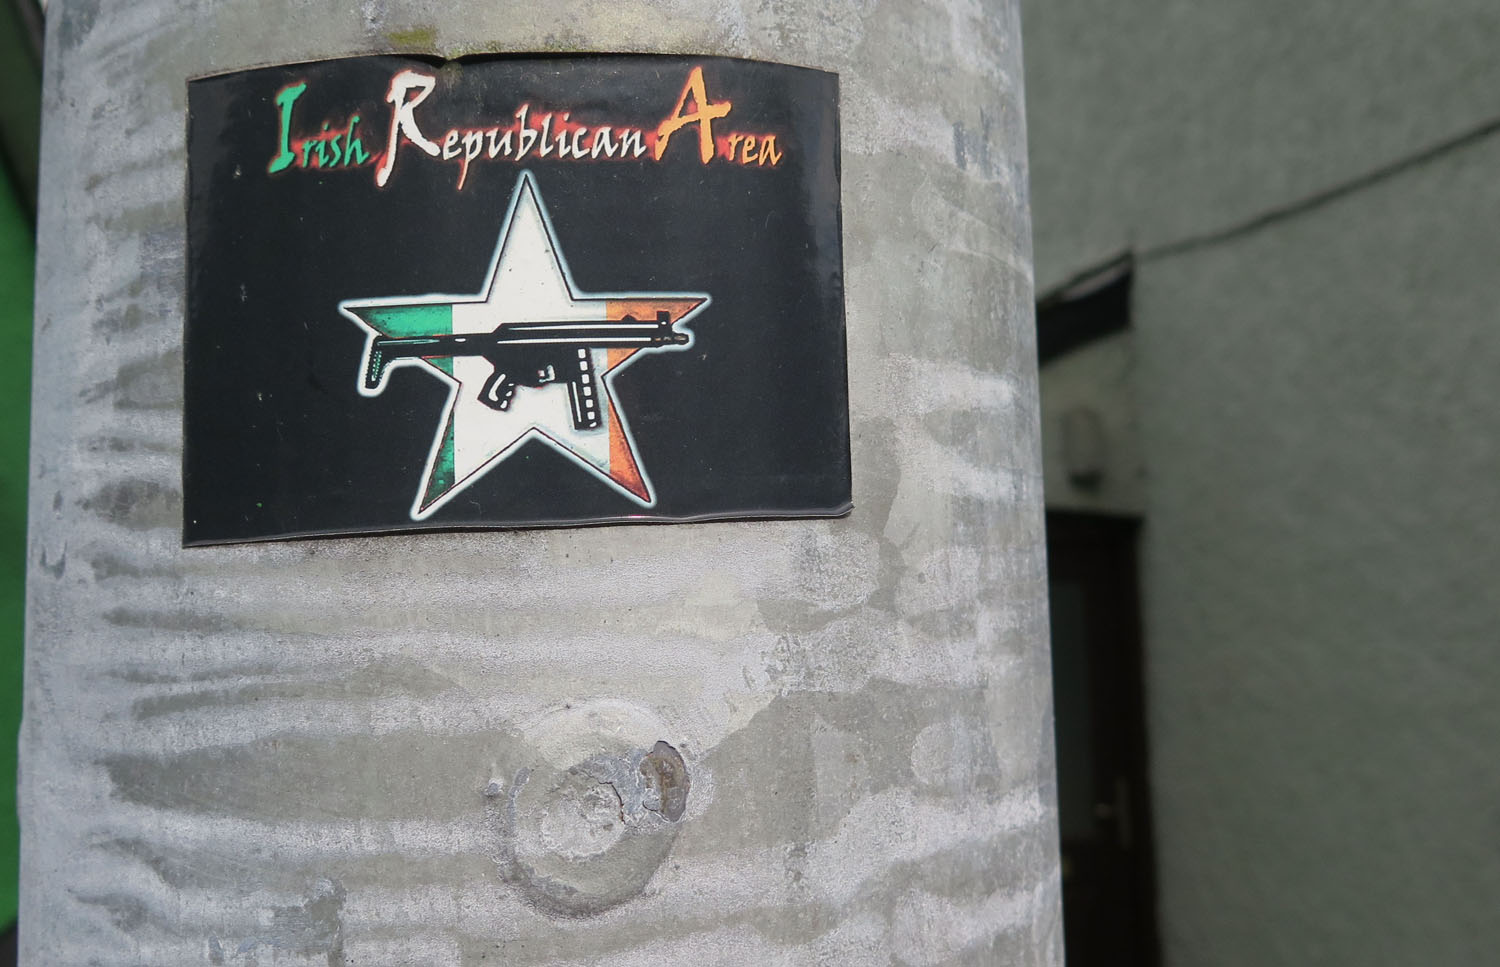 Northern-Ireland-Derry-Londonderry-Irish-Republican-Area-Sticker